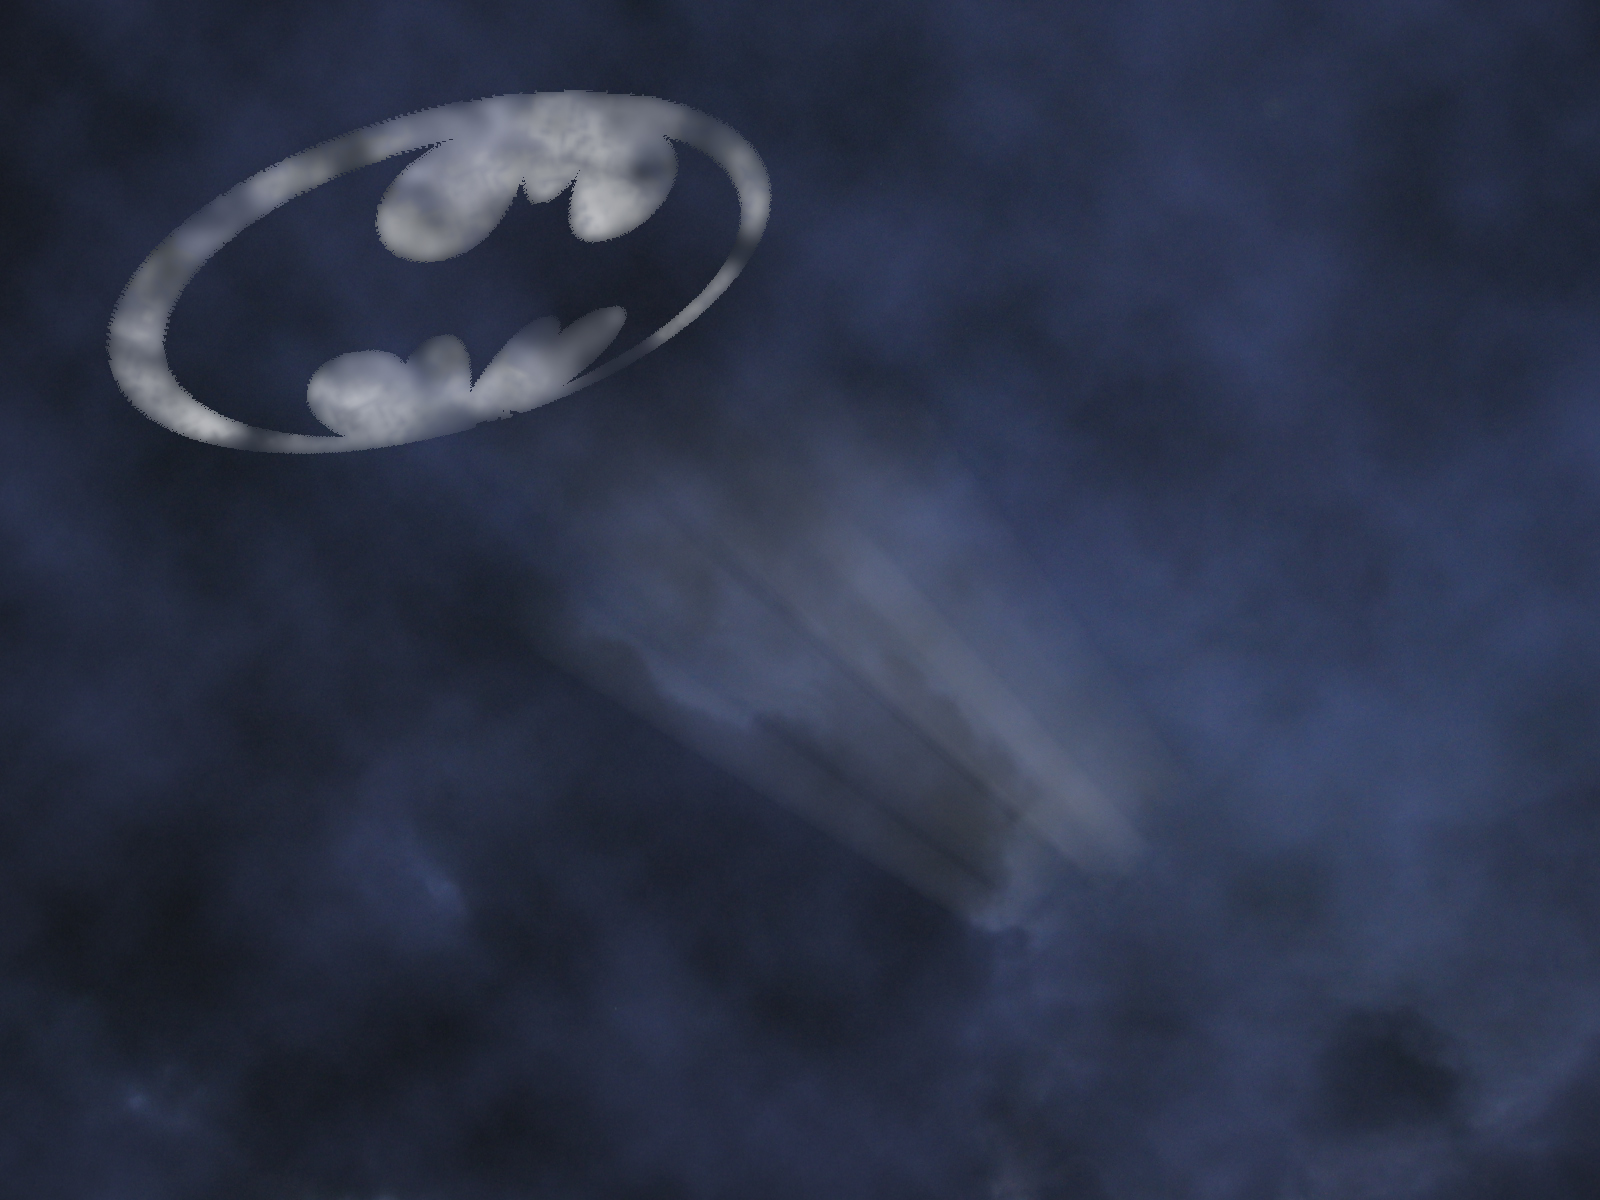 bat signal lamp photo - 1